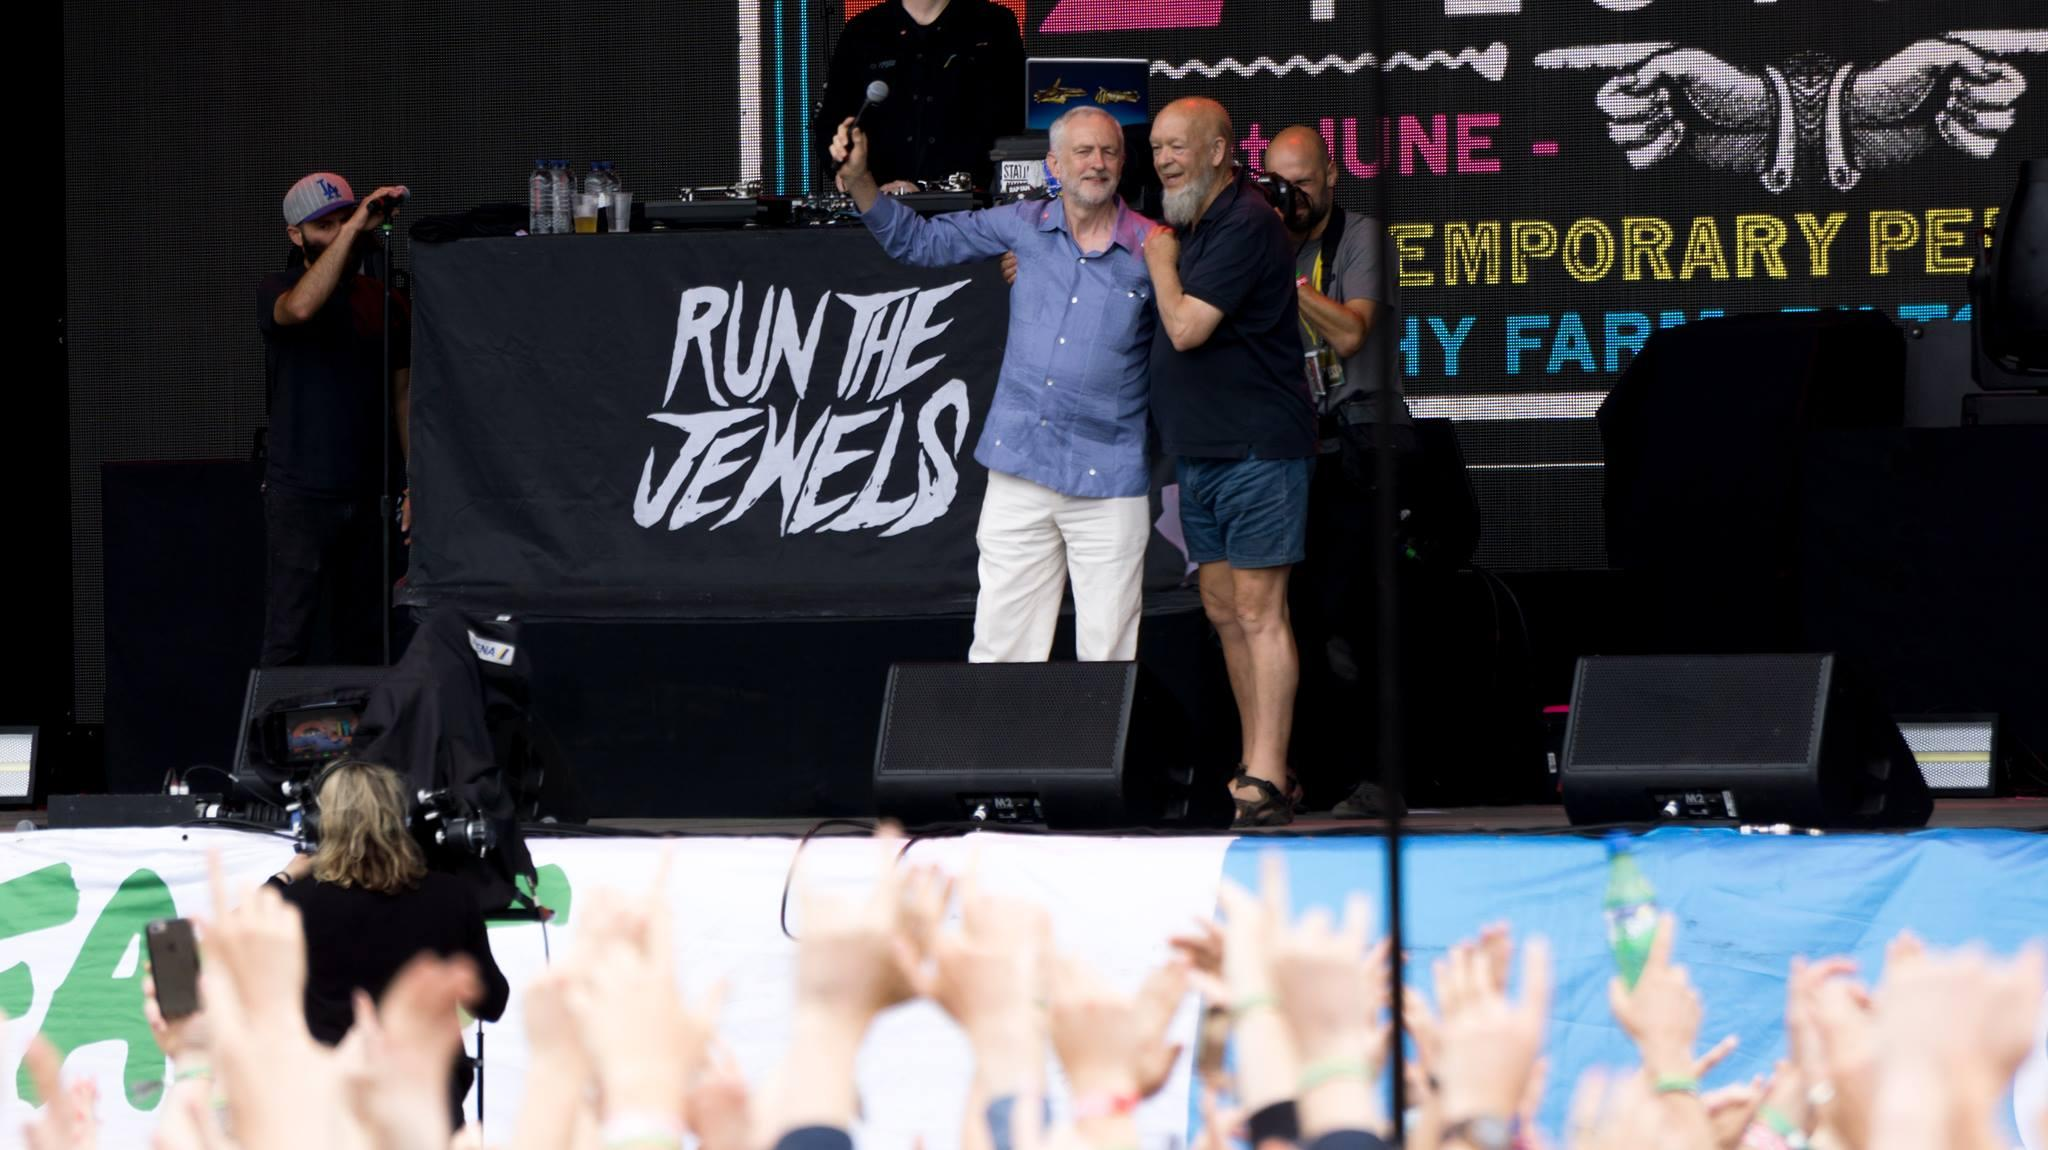 Corbyn opening up for Run The Jewels at Glastonbury this summer